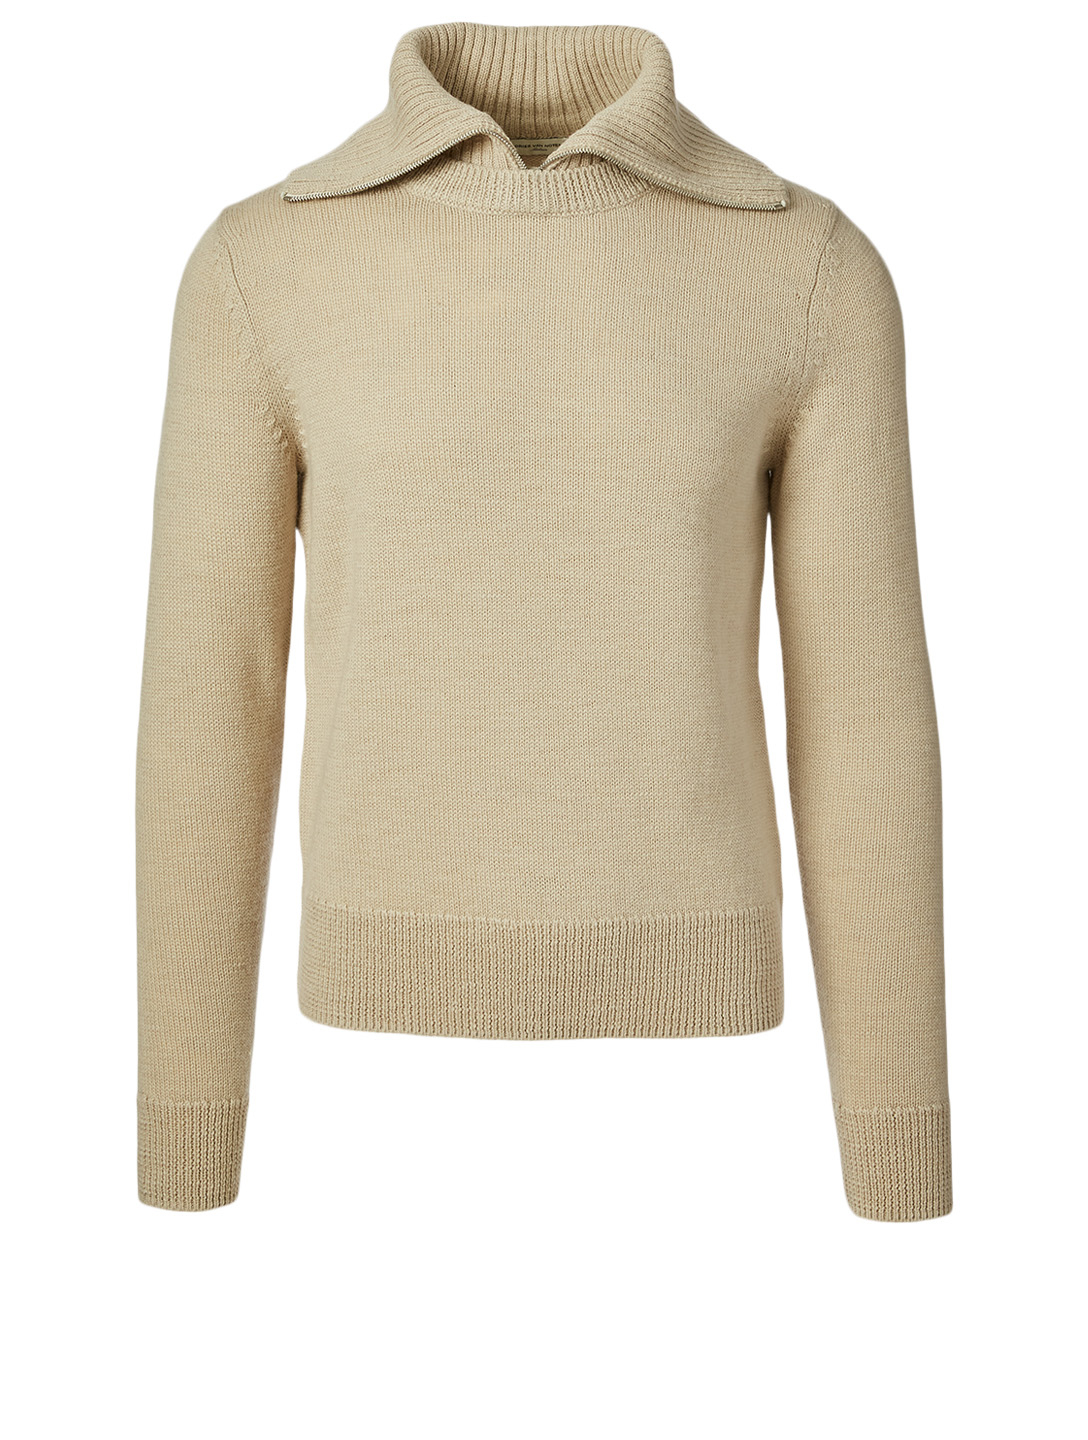 DRIES VAN NOTEN Milano Wool Knit Sweater Men's Beige